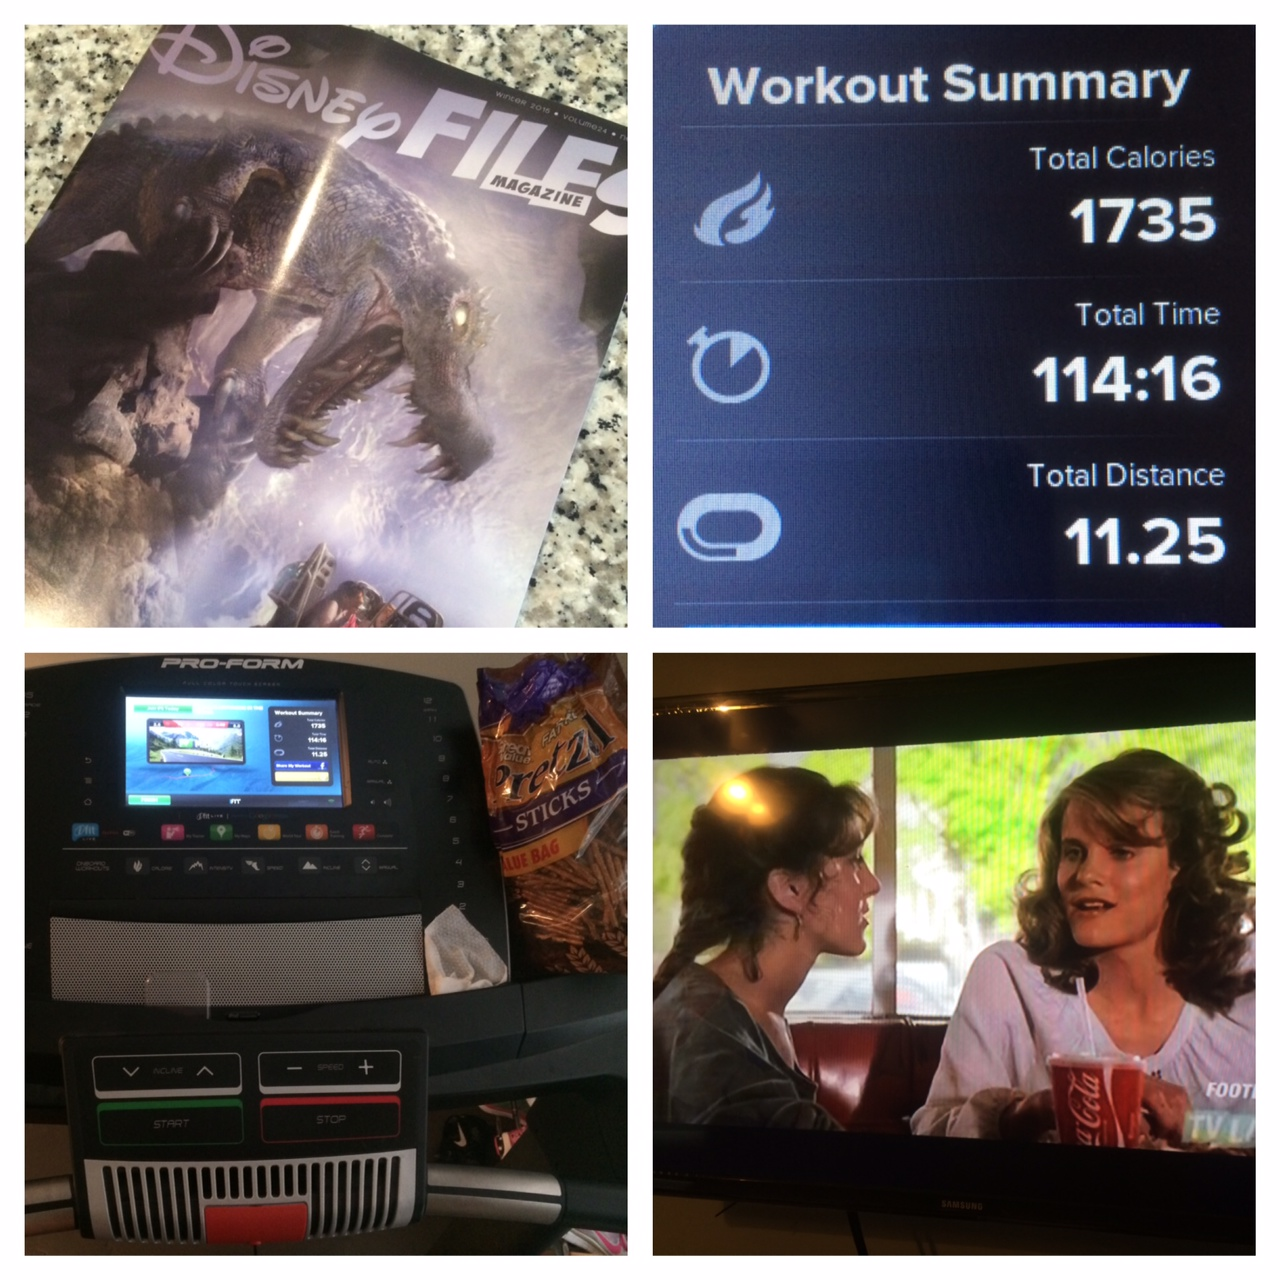 Keys to a long treadmill run: a good movie (Footloose) and back up entertainment, like a magazine.